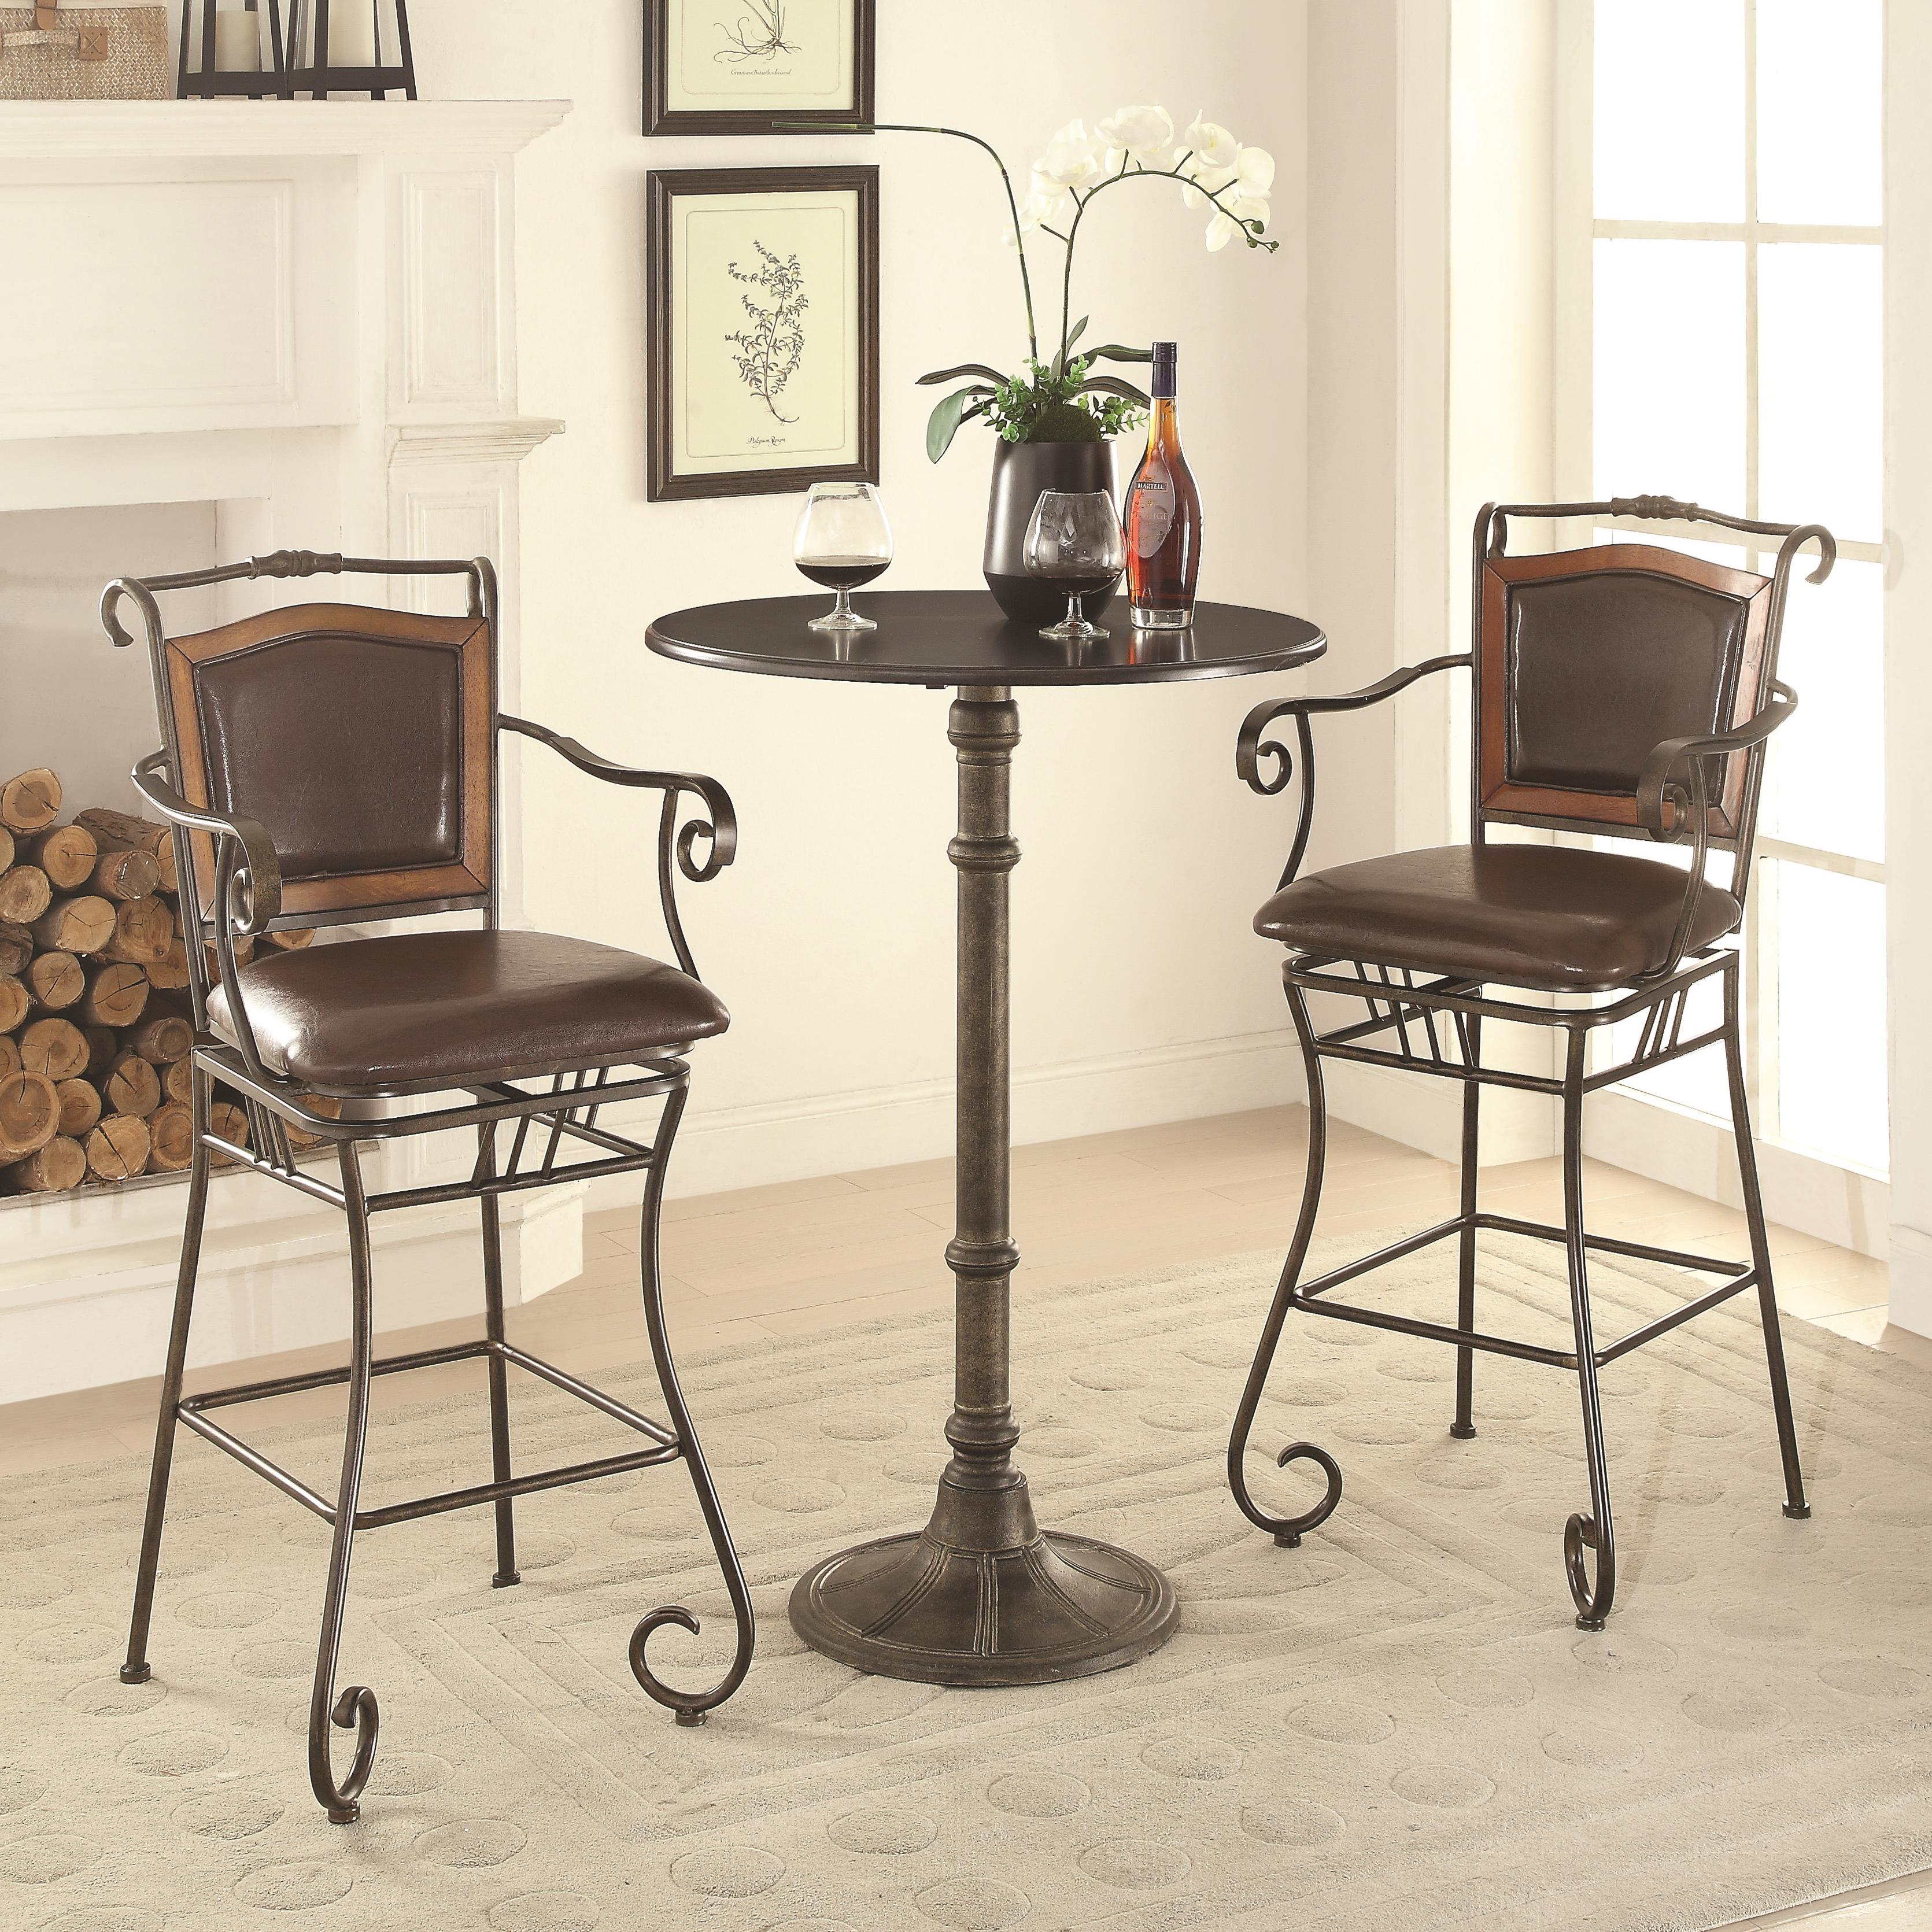 Lovely Wrought Iron Bistro Table and Chairs